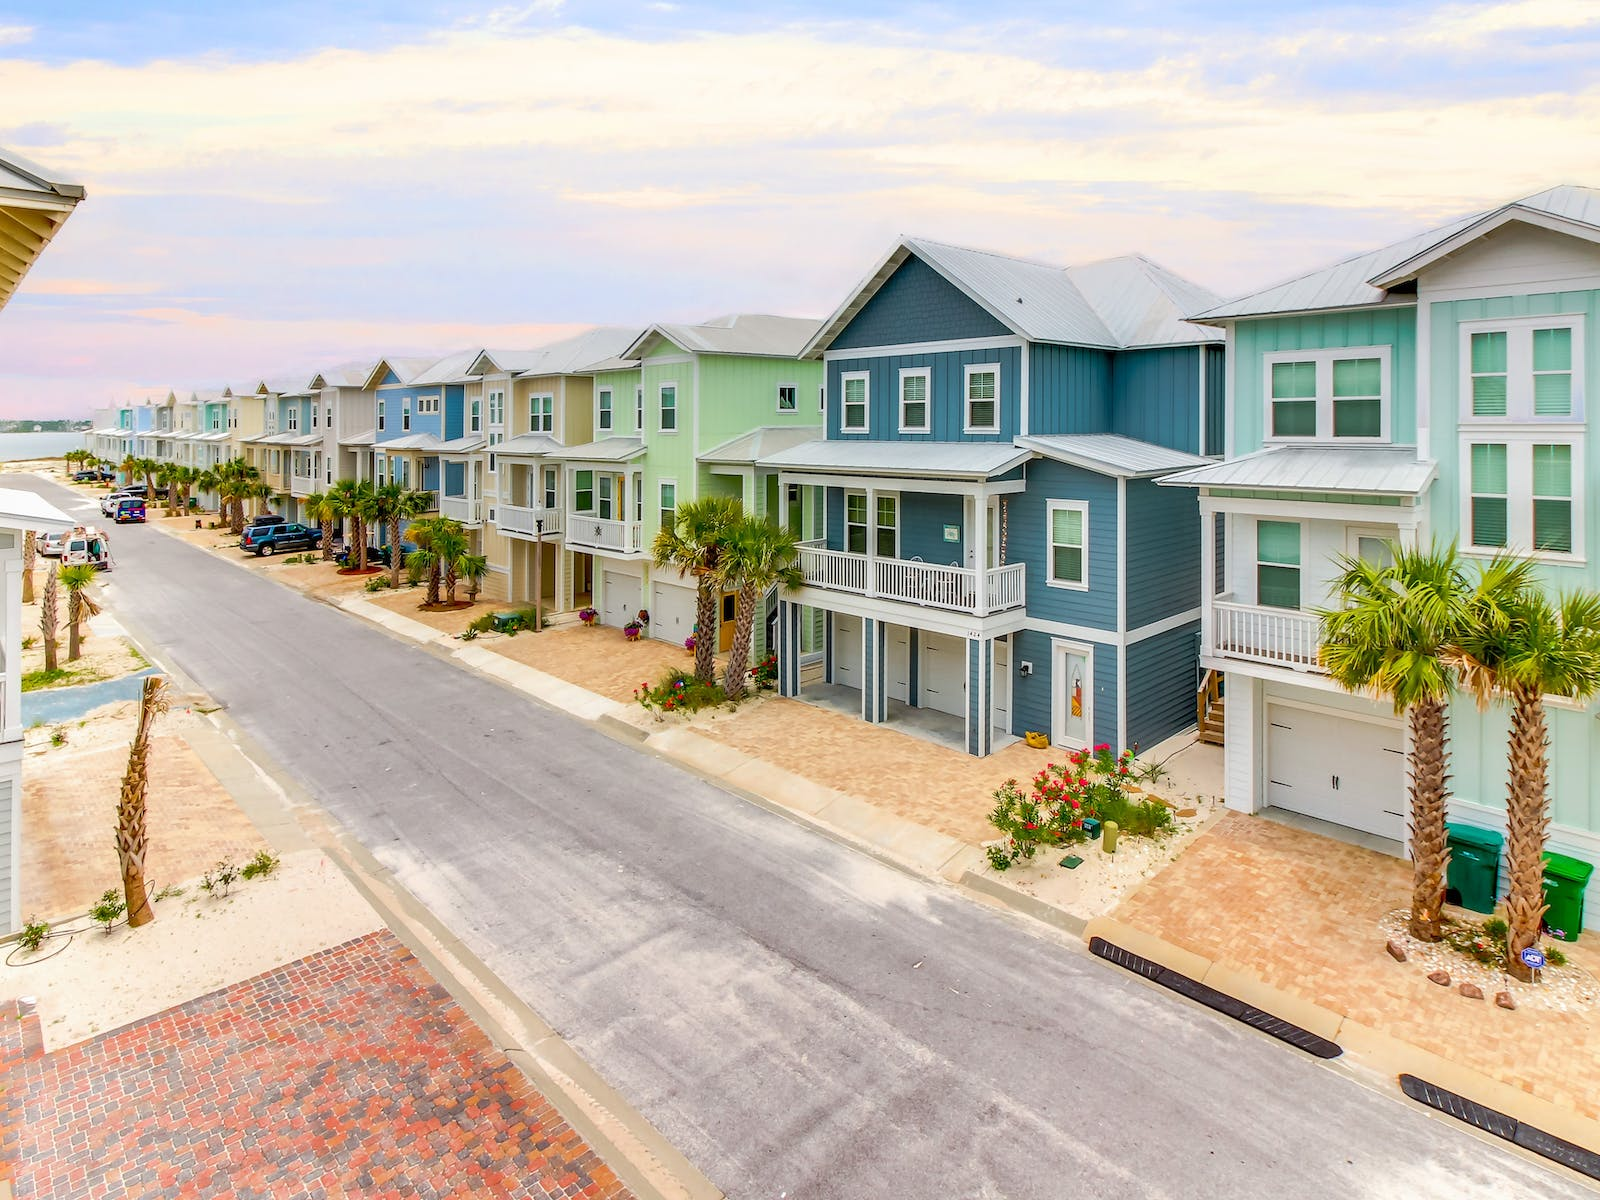 row of beach houses in Navarre Beach, FL